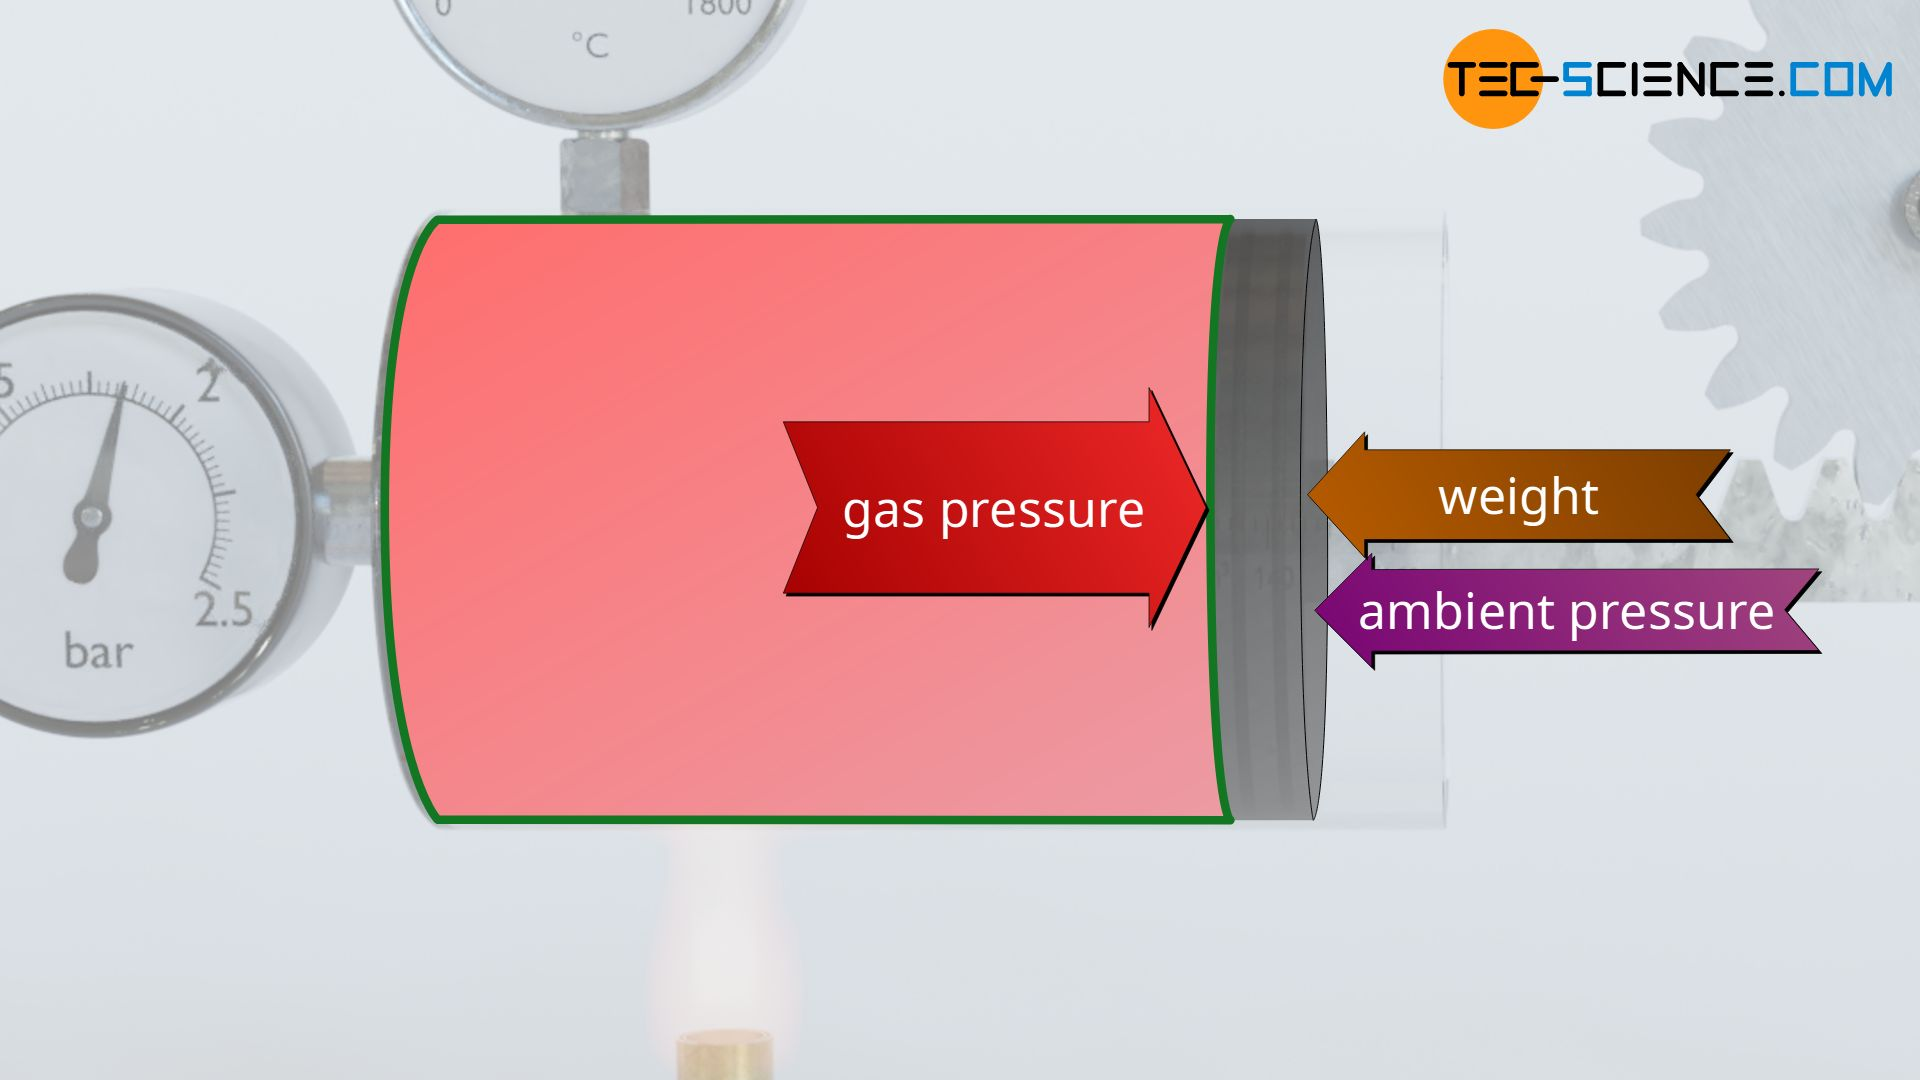 Dividing the pressure-volume work into useful work and static pressure work